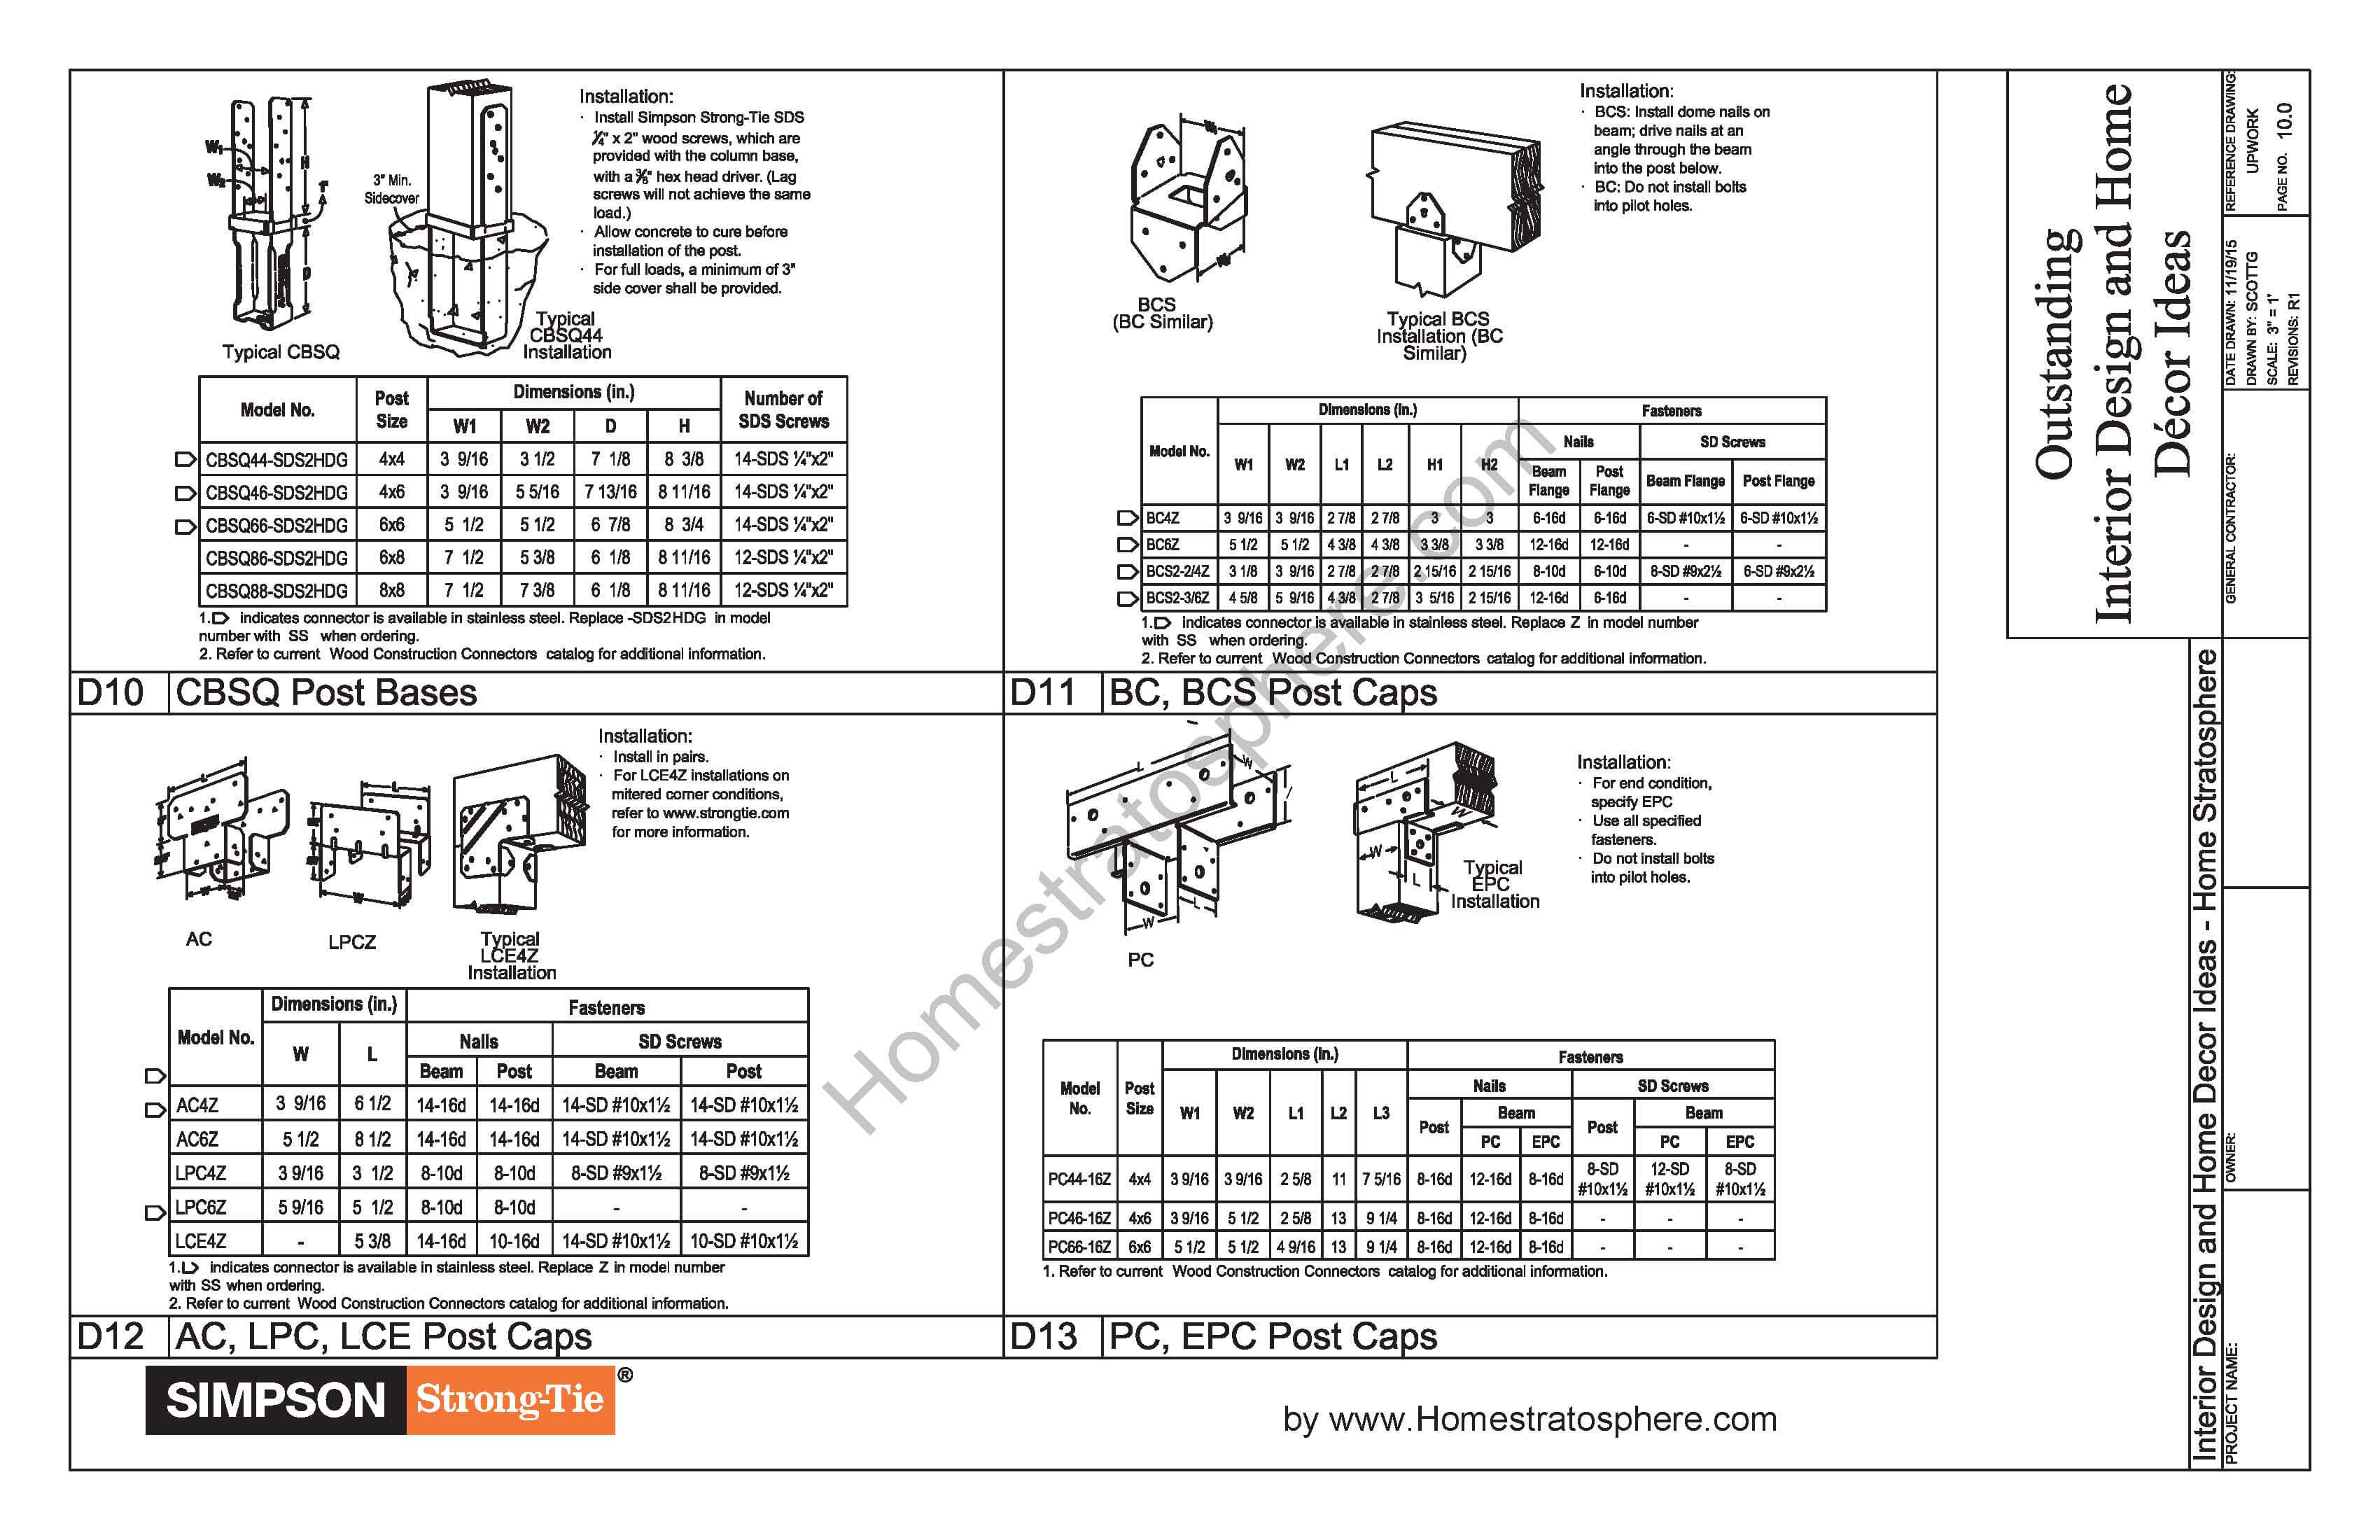 Free 12' X 16' Deck Plan Blueprint (with PDF Doent Download)  X Deck Plans on 14x16 deck plans, 12x25 deck plans, 20x24 deck plans, 15x15 deck plans, 12x14 deck plans, 12x40 deck plans, 16x32 deck plans, 18x24 deck plans, 12x26 deck plans, 10x24 deck plans, 16x26 deck plans, 14x14 deck plans, 20x26 deck plans, 12x32 deck plans, 15x20 deck plans, 6x8 deck plans, 14x28 deck plans, 12x13 deck plans, 11x14 deck plans, 18x18 deck plans,